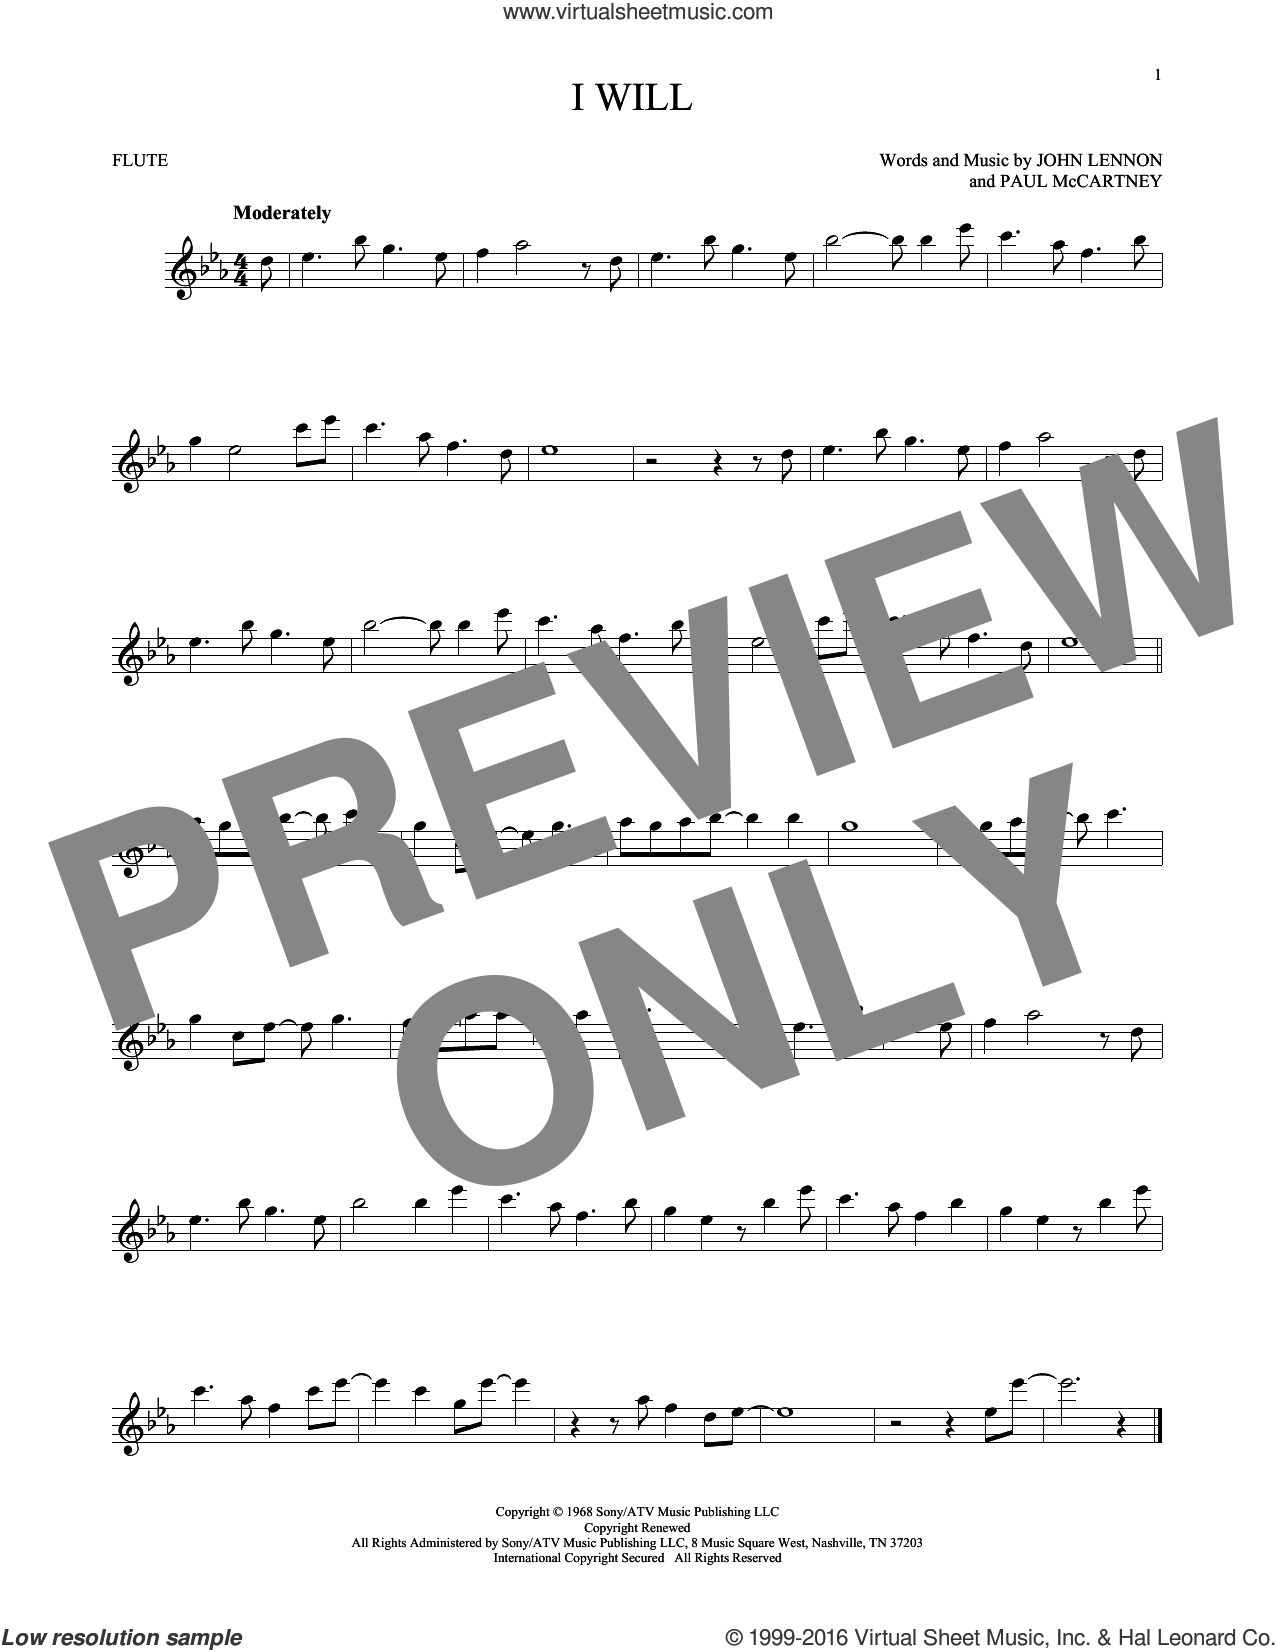 I Will sheet music for flute solo by The Beatles, John Lennon and Paul McCartney. Score Image Preview.